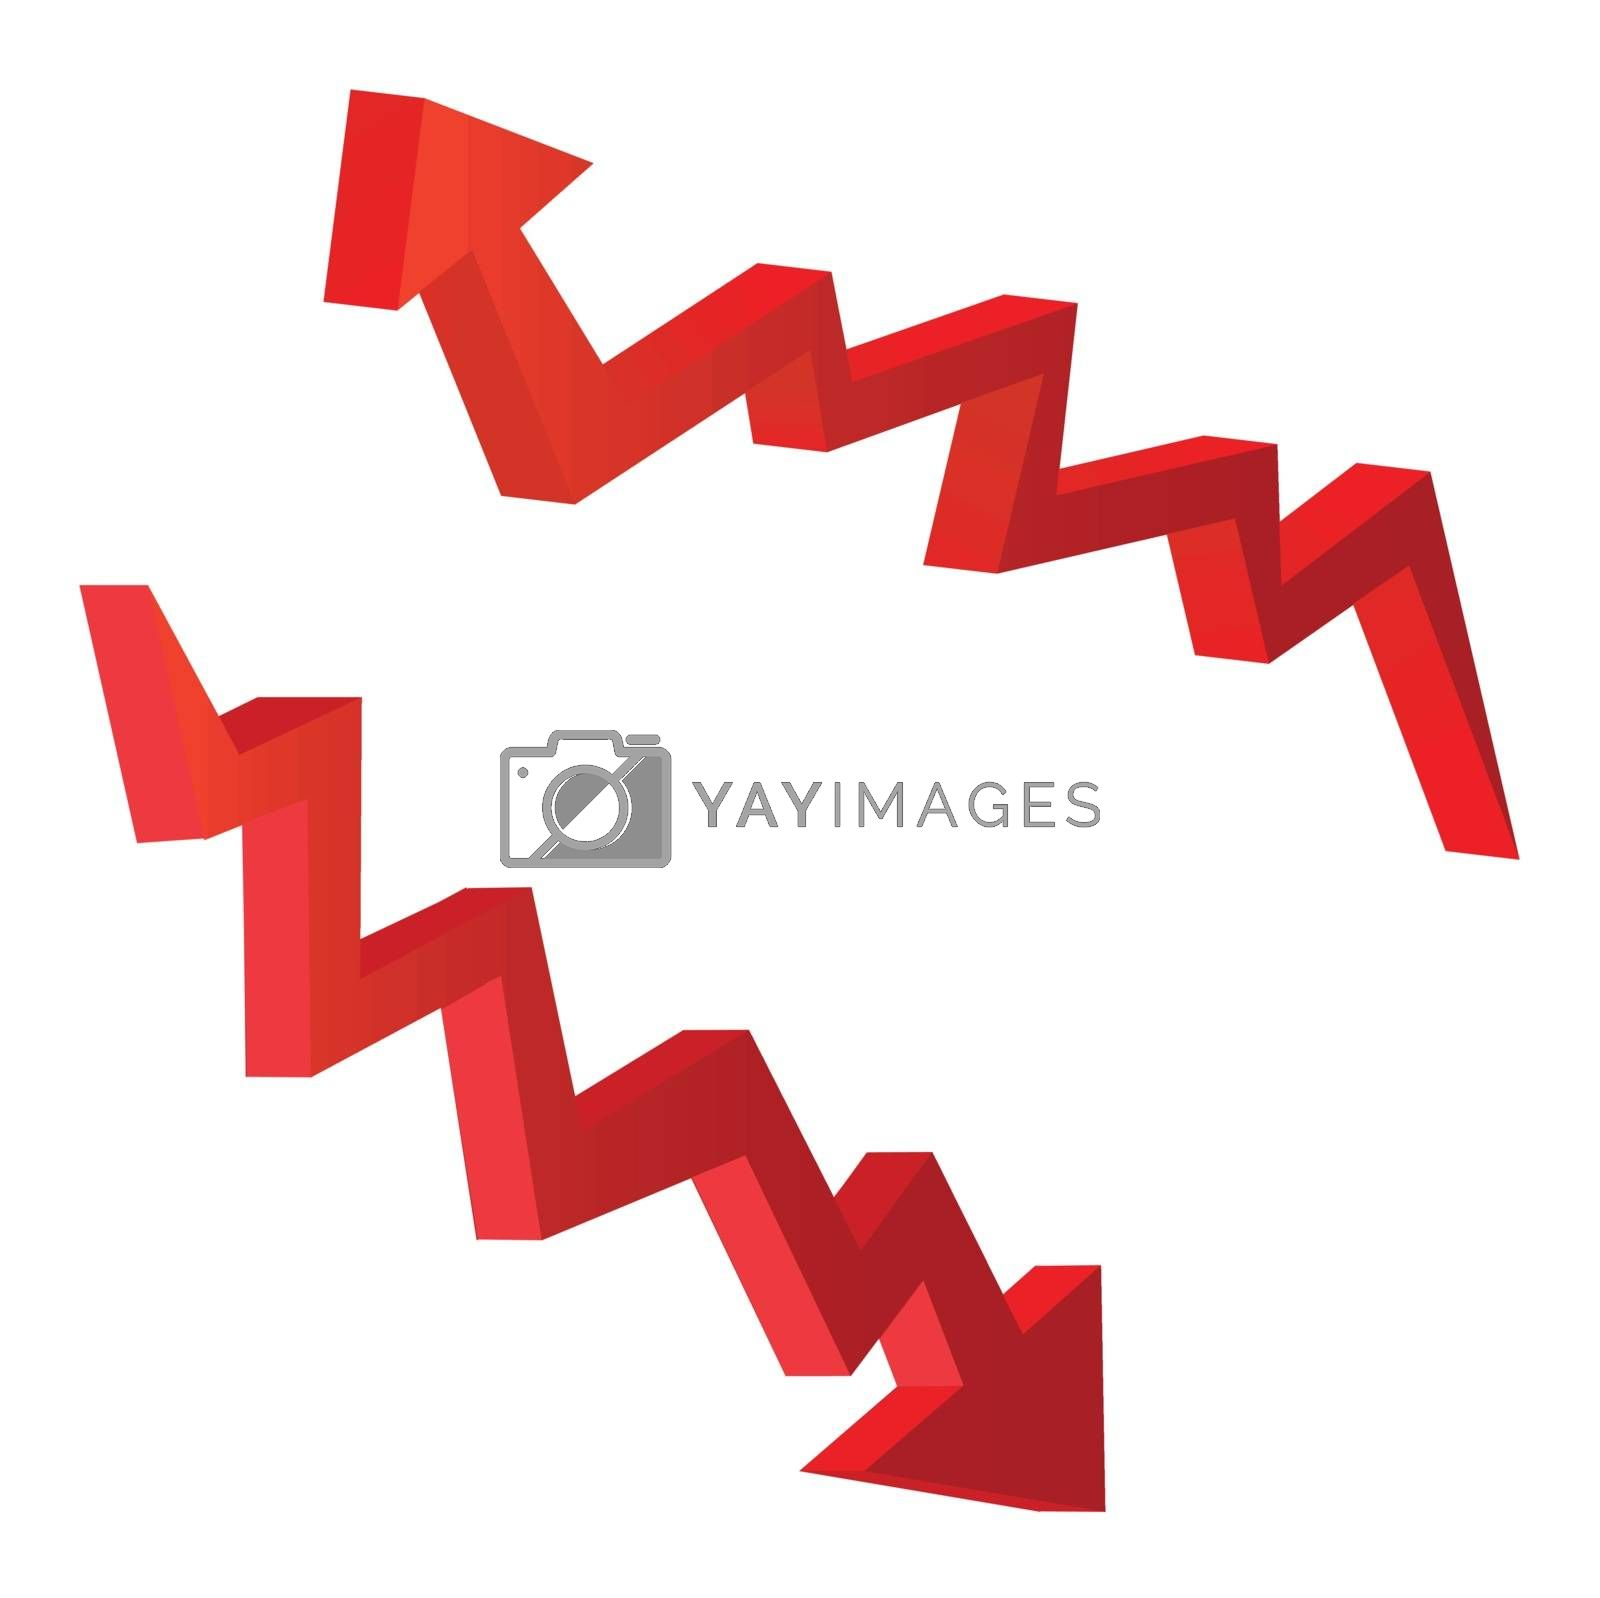 red arrow vector illustrations in 3d form, for economic concepts.